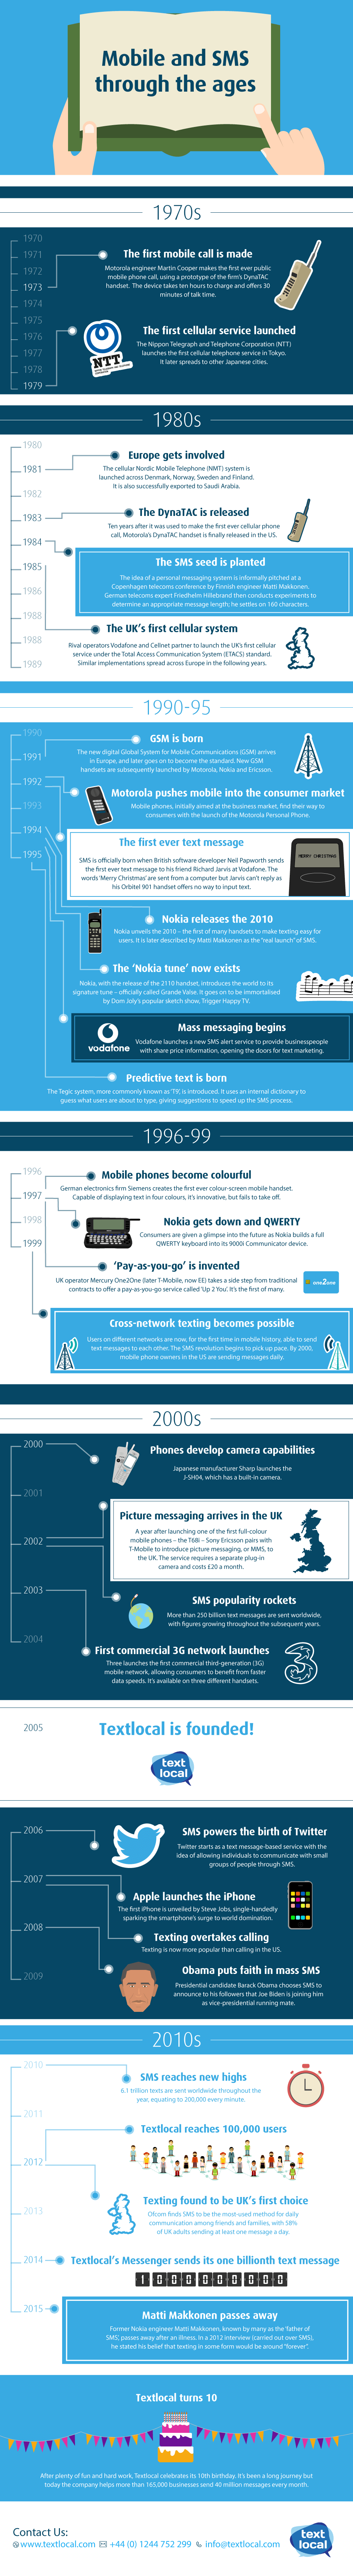 infographic-mobile-and-sms-through-the-ages